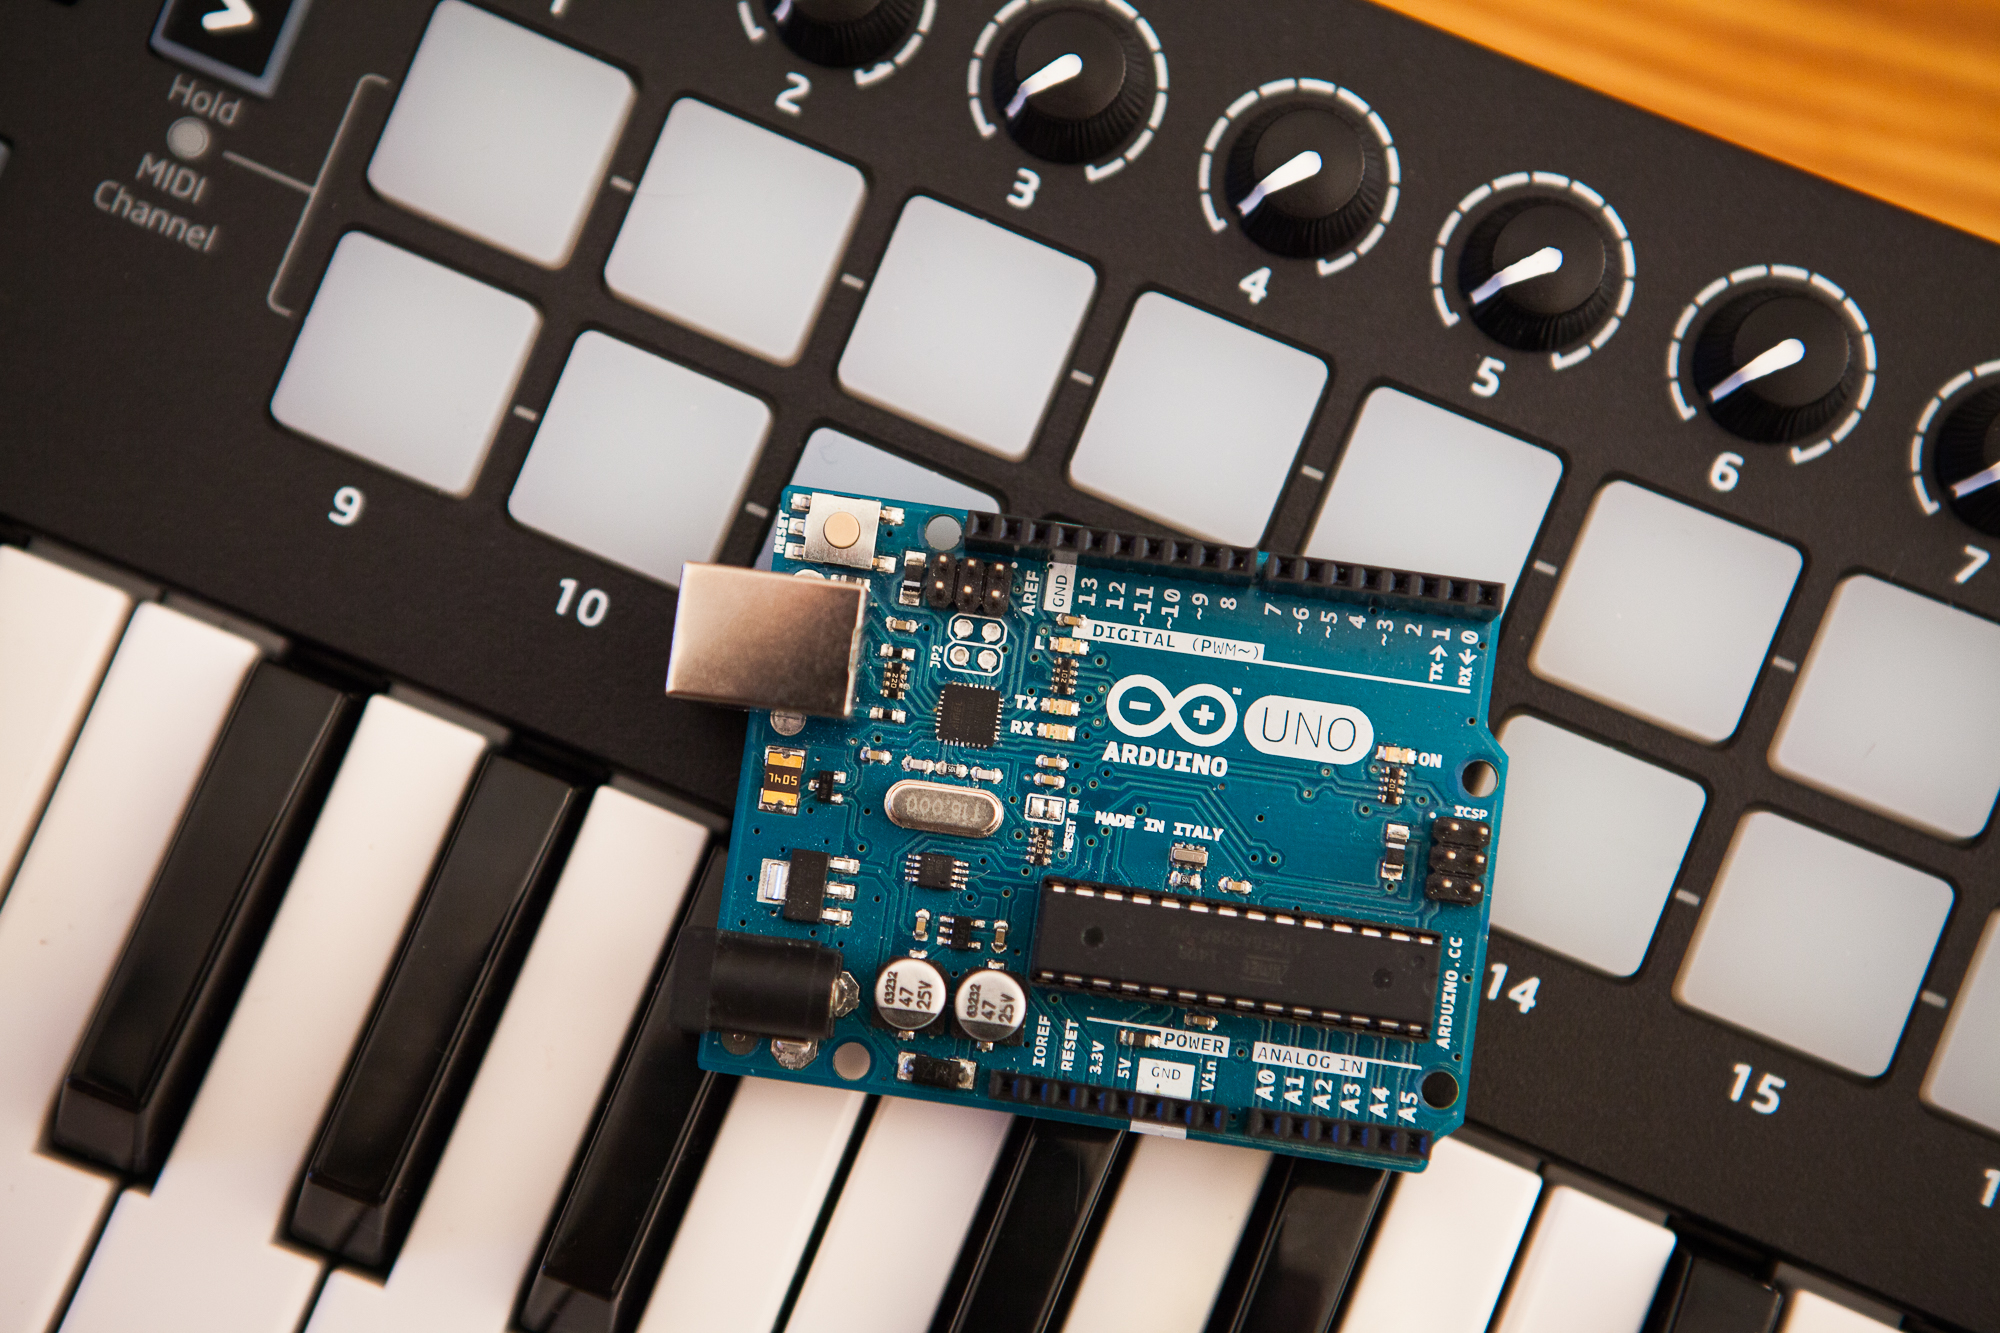 How to Control Anything on Arduino Using MIDI - Parts Not Included